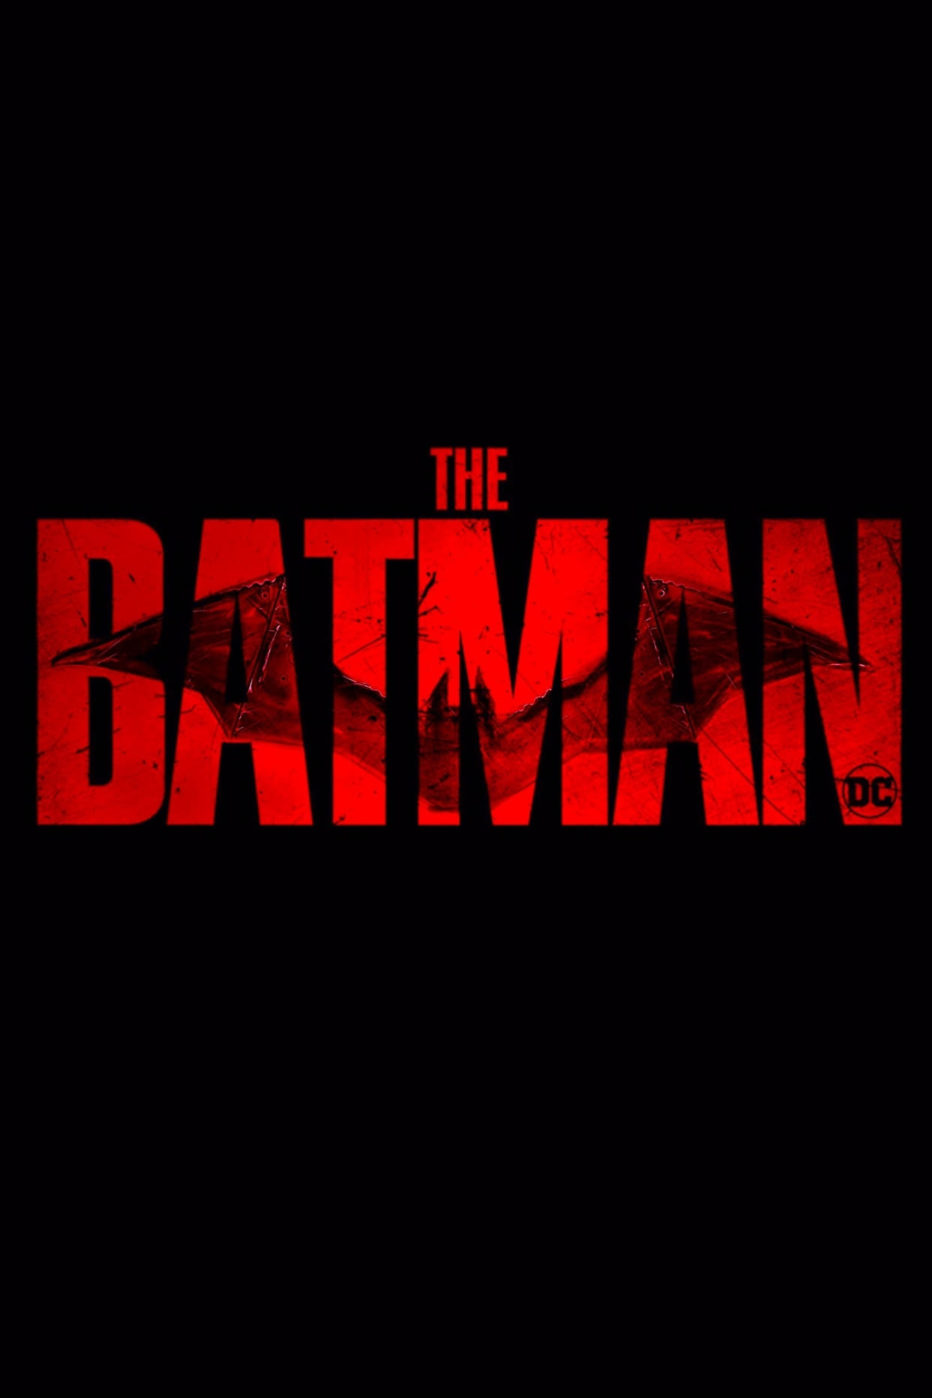 The Batman. Primer teaser!! Robert Pattinson con ganas de callar bocas en el #DCFandome